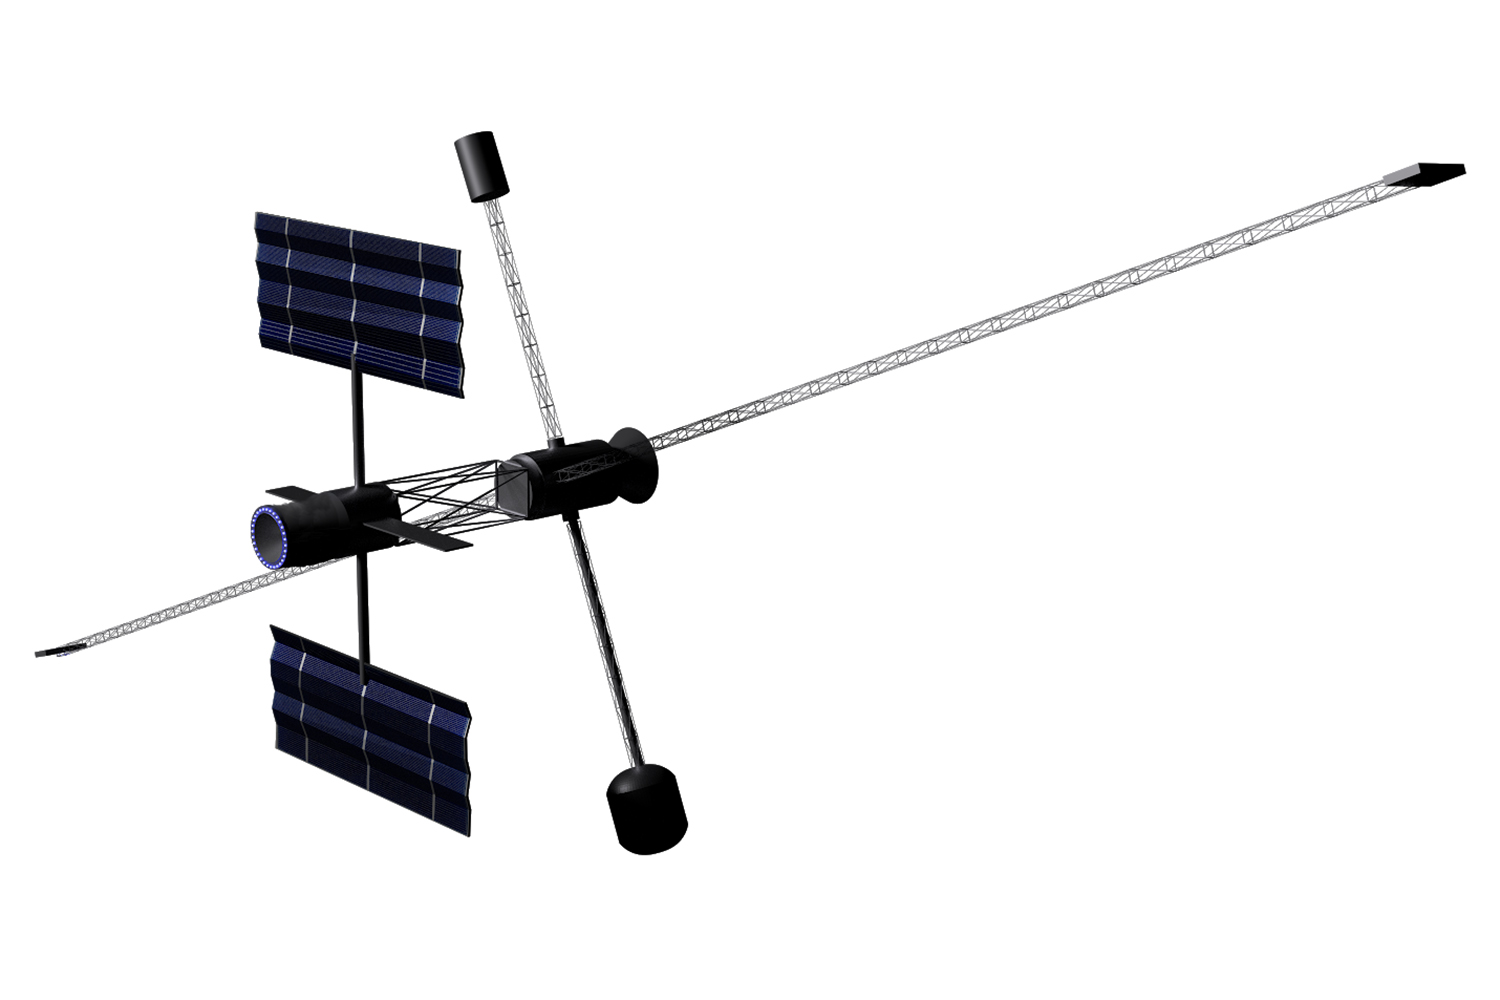 The team designed its spacecraft with solar panels on one end and two main capsules that rotate to simulate gravity.